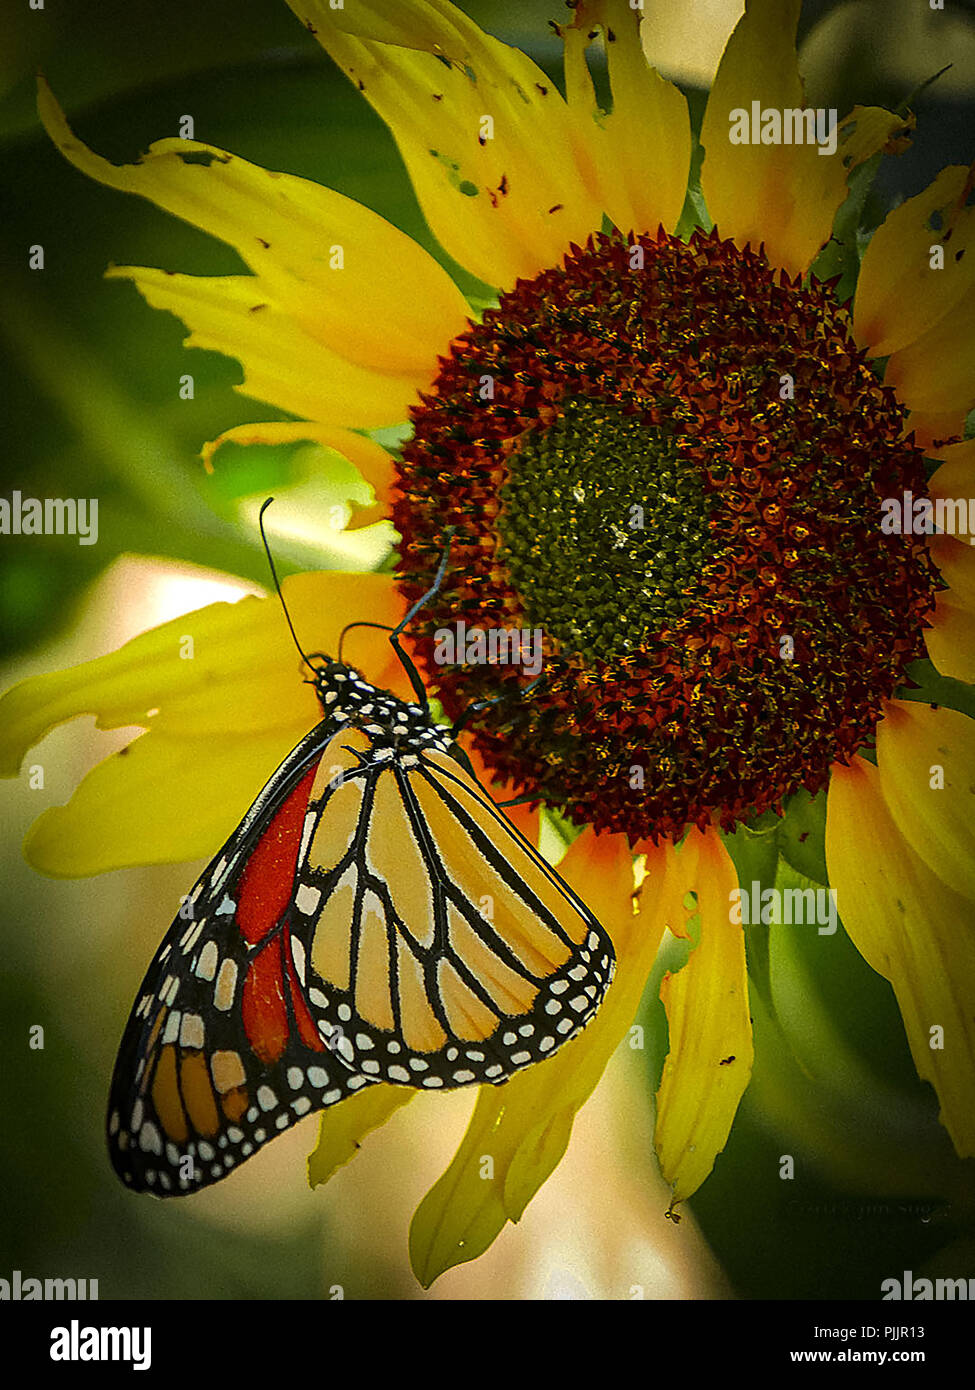 New York City Monarch butterfly enjoying lunch in Riverside Park with a fading sunflower on a beautiful fall day. 22nd Oct, 2017. Lumix GX-85   14-140mm lens. @the PhotoSociety #natgeocreative Credit: Jim Sugar/ZUMA Wire/Alamy Live News - Stock Image